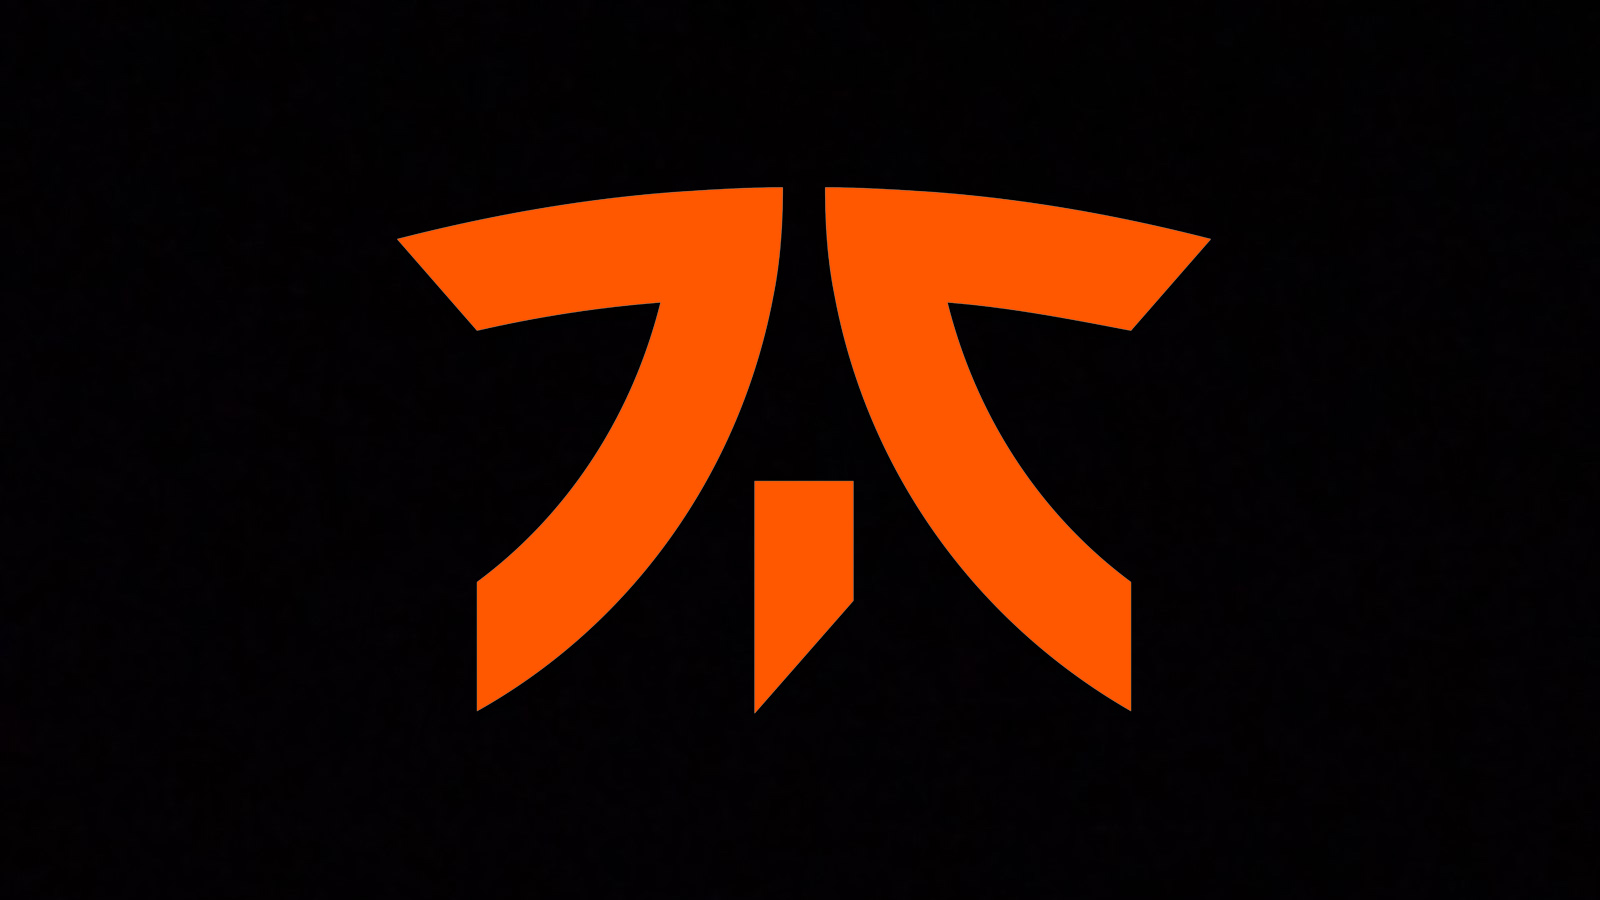 New Fnatic logo leaked ahead of rebrand